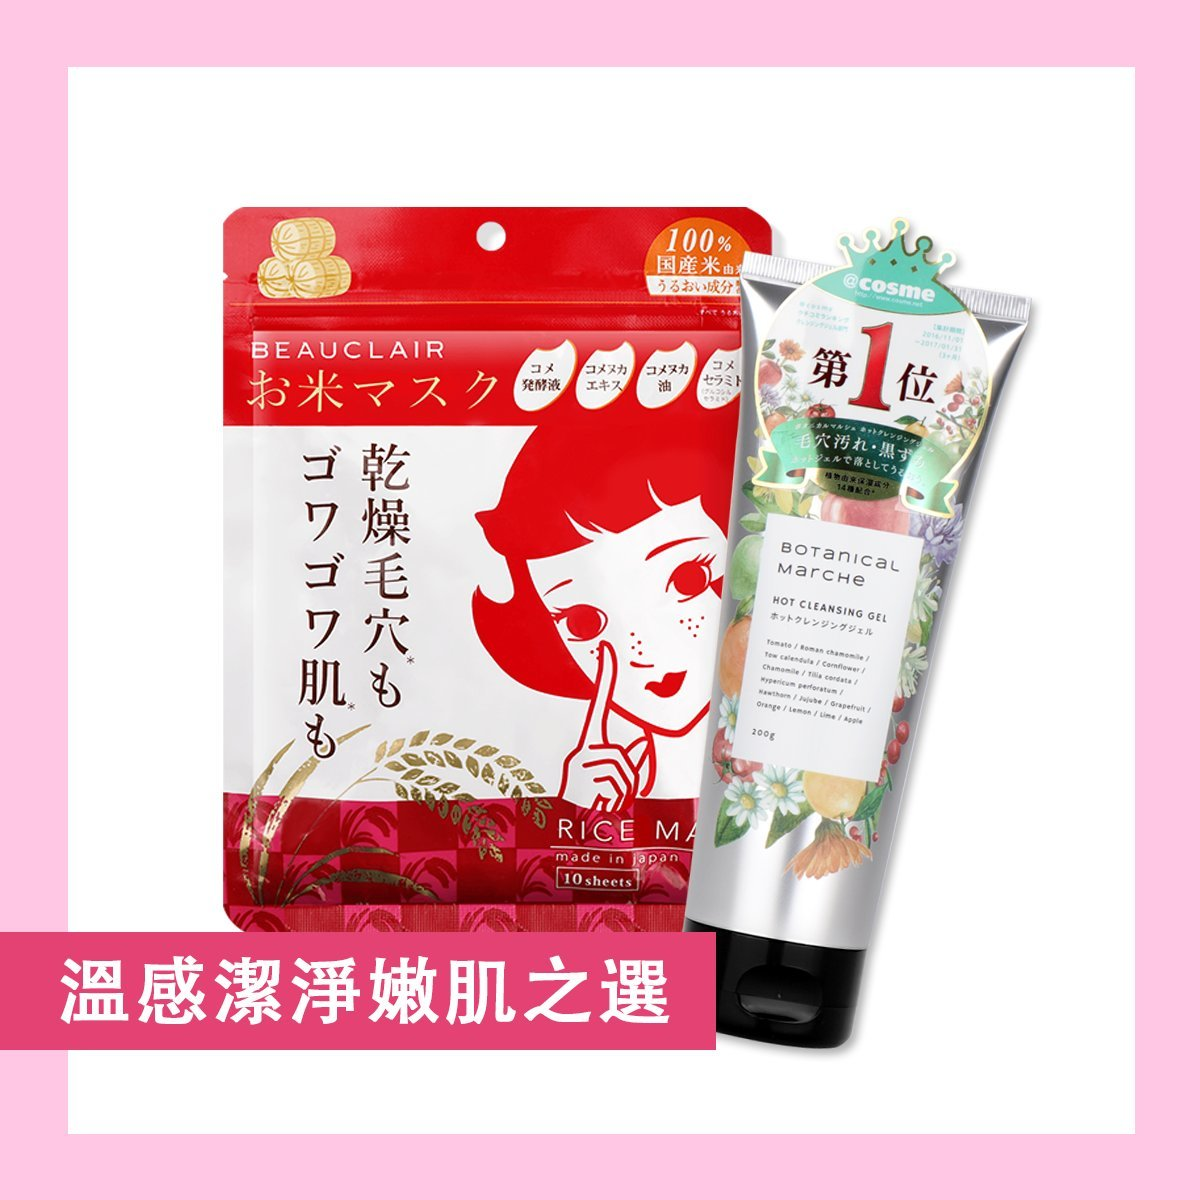 Botanical Marche Hot Cleansing Gel + Beauclair Rice Mask(10 pcs/pack)【Parallel Imports】